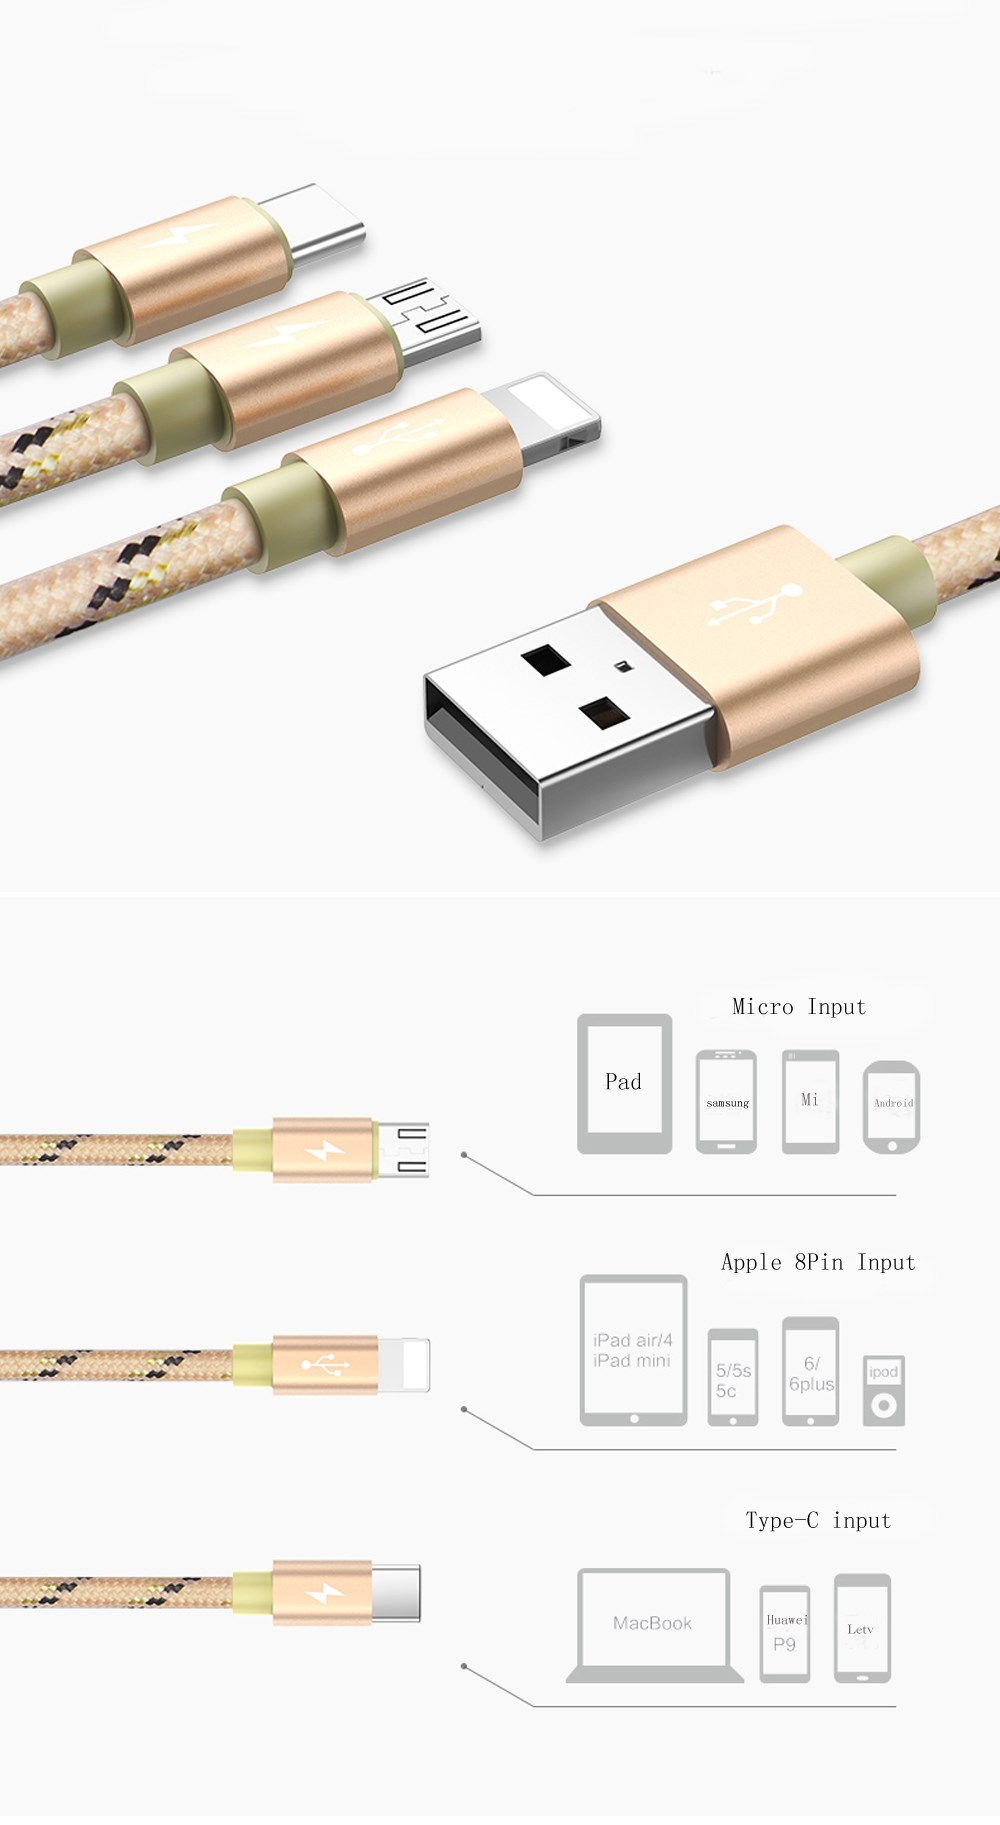 YOOBAO 120cm 3 in 1 cables with Type-C Micro light-ning interface